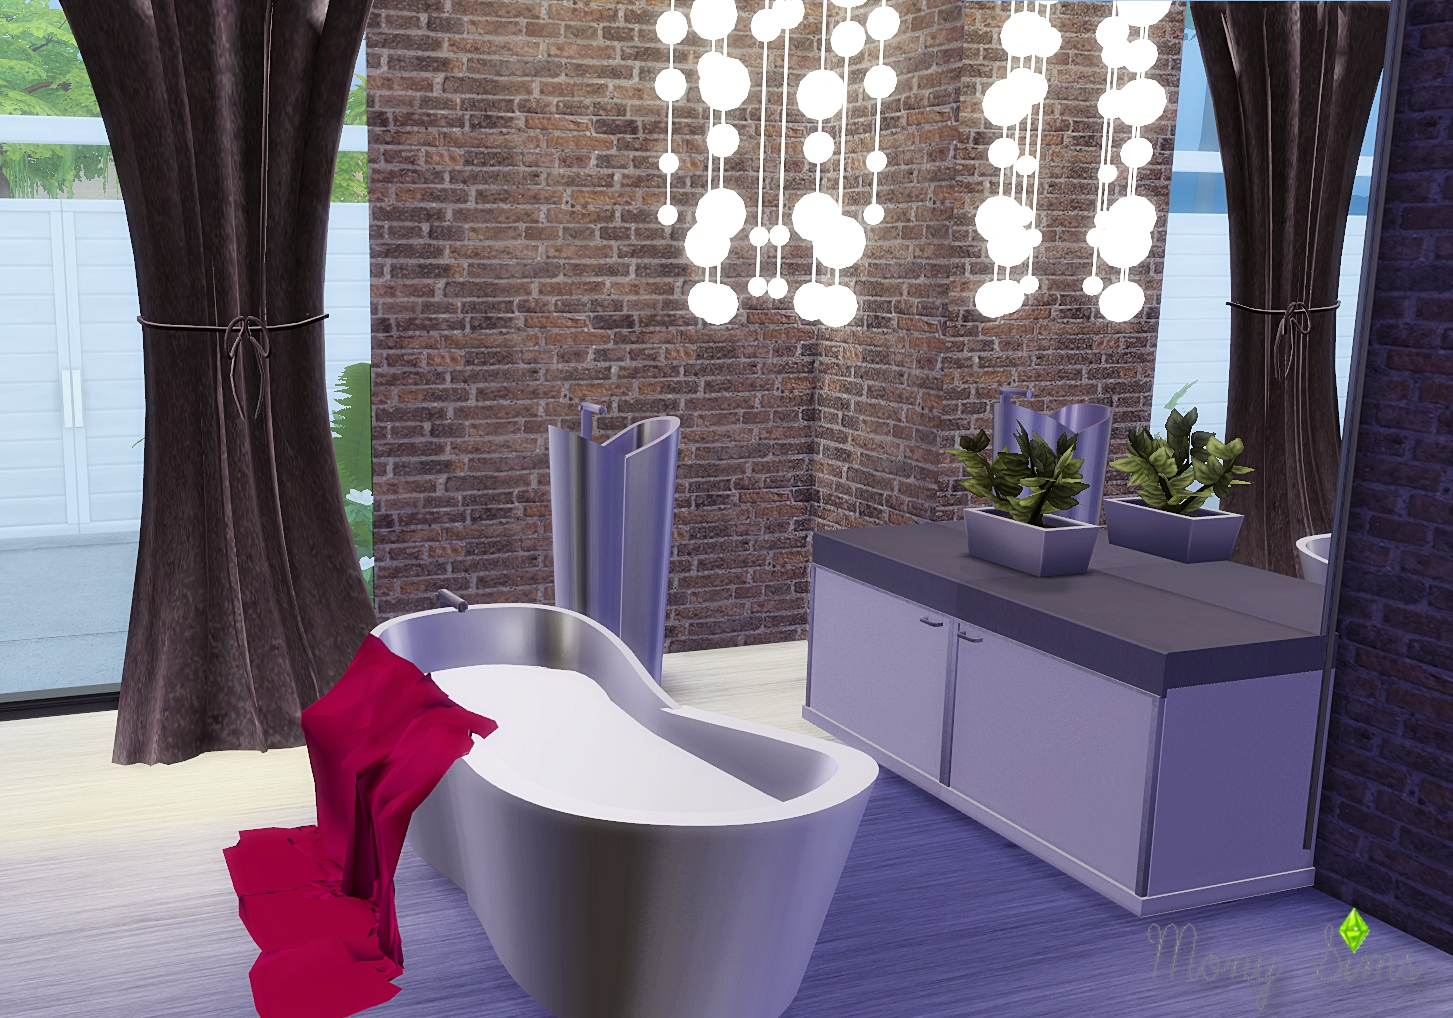 Lizzies Bathroom converso TS2 - TS4 by MONY SIMS